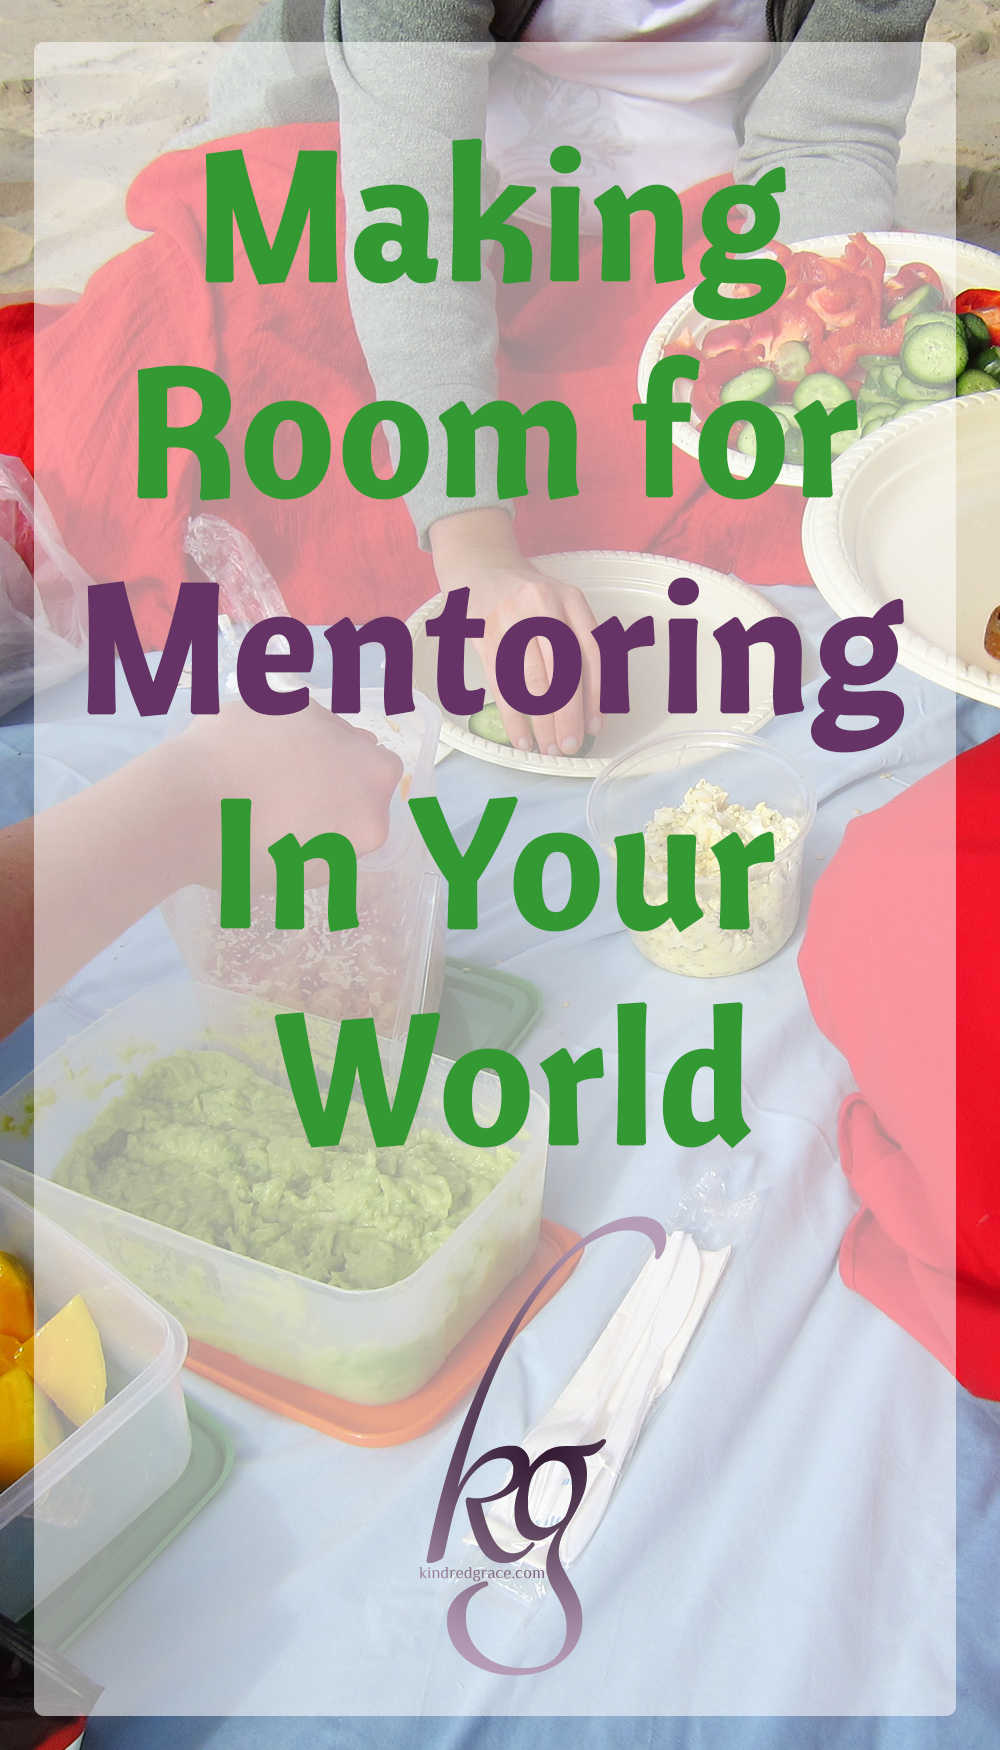 Making Room for Mentoring in Your World